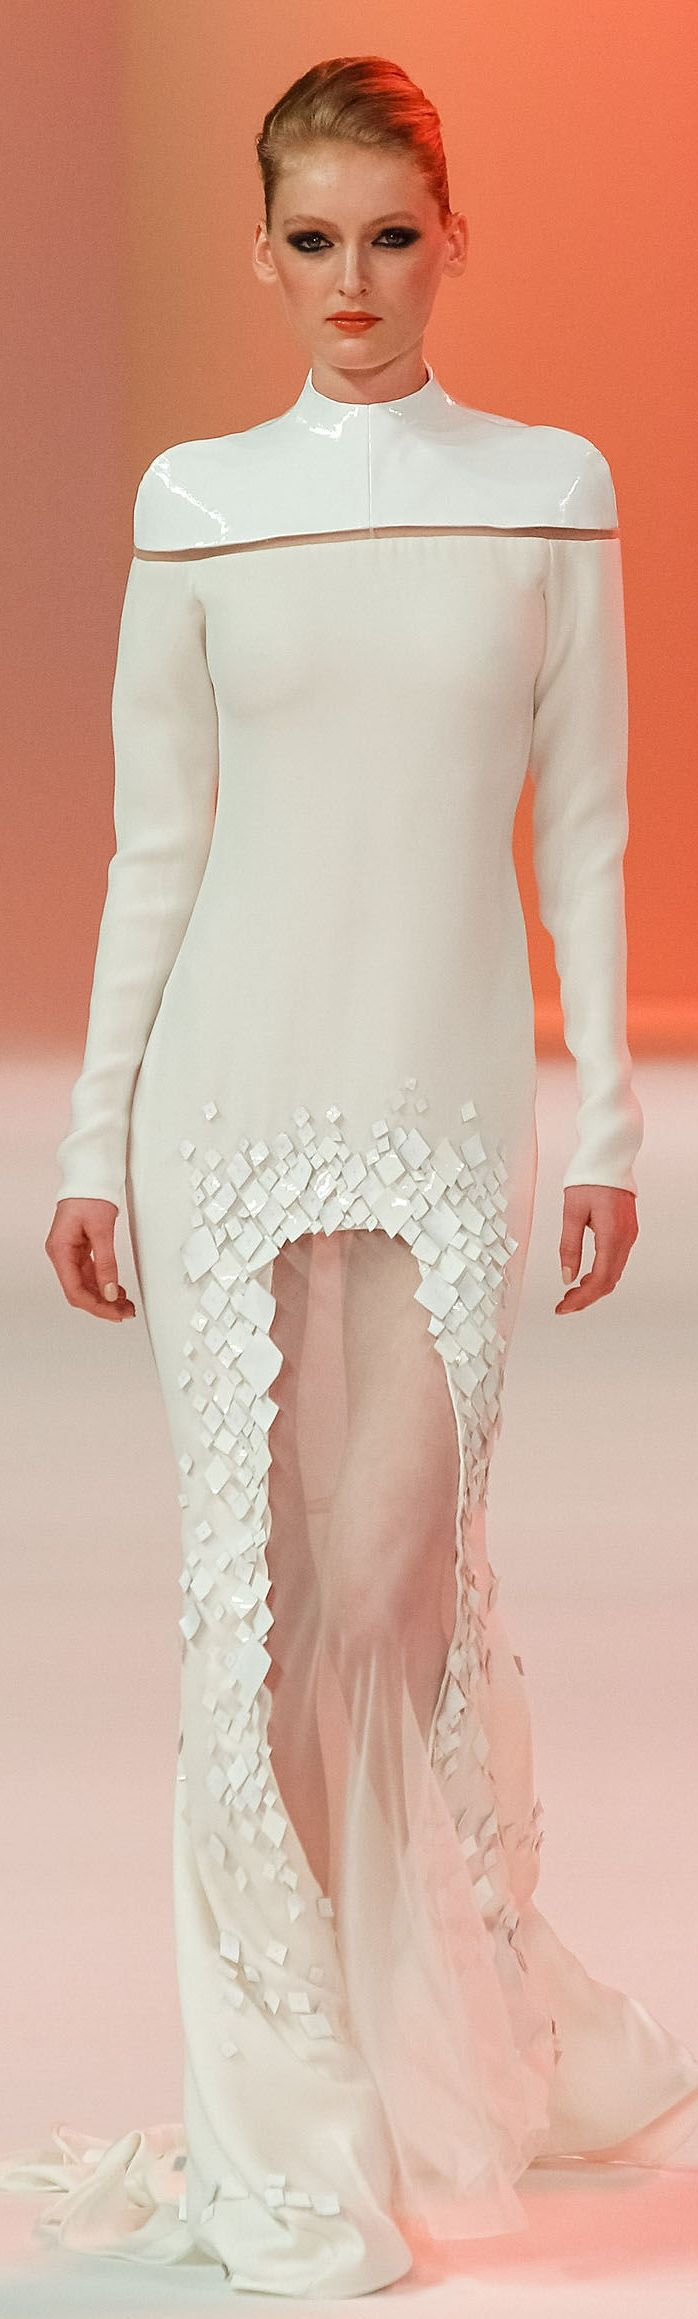 Stéphane Rolland Haute Couture Spring/Summer 14